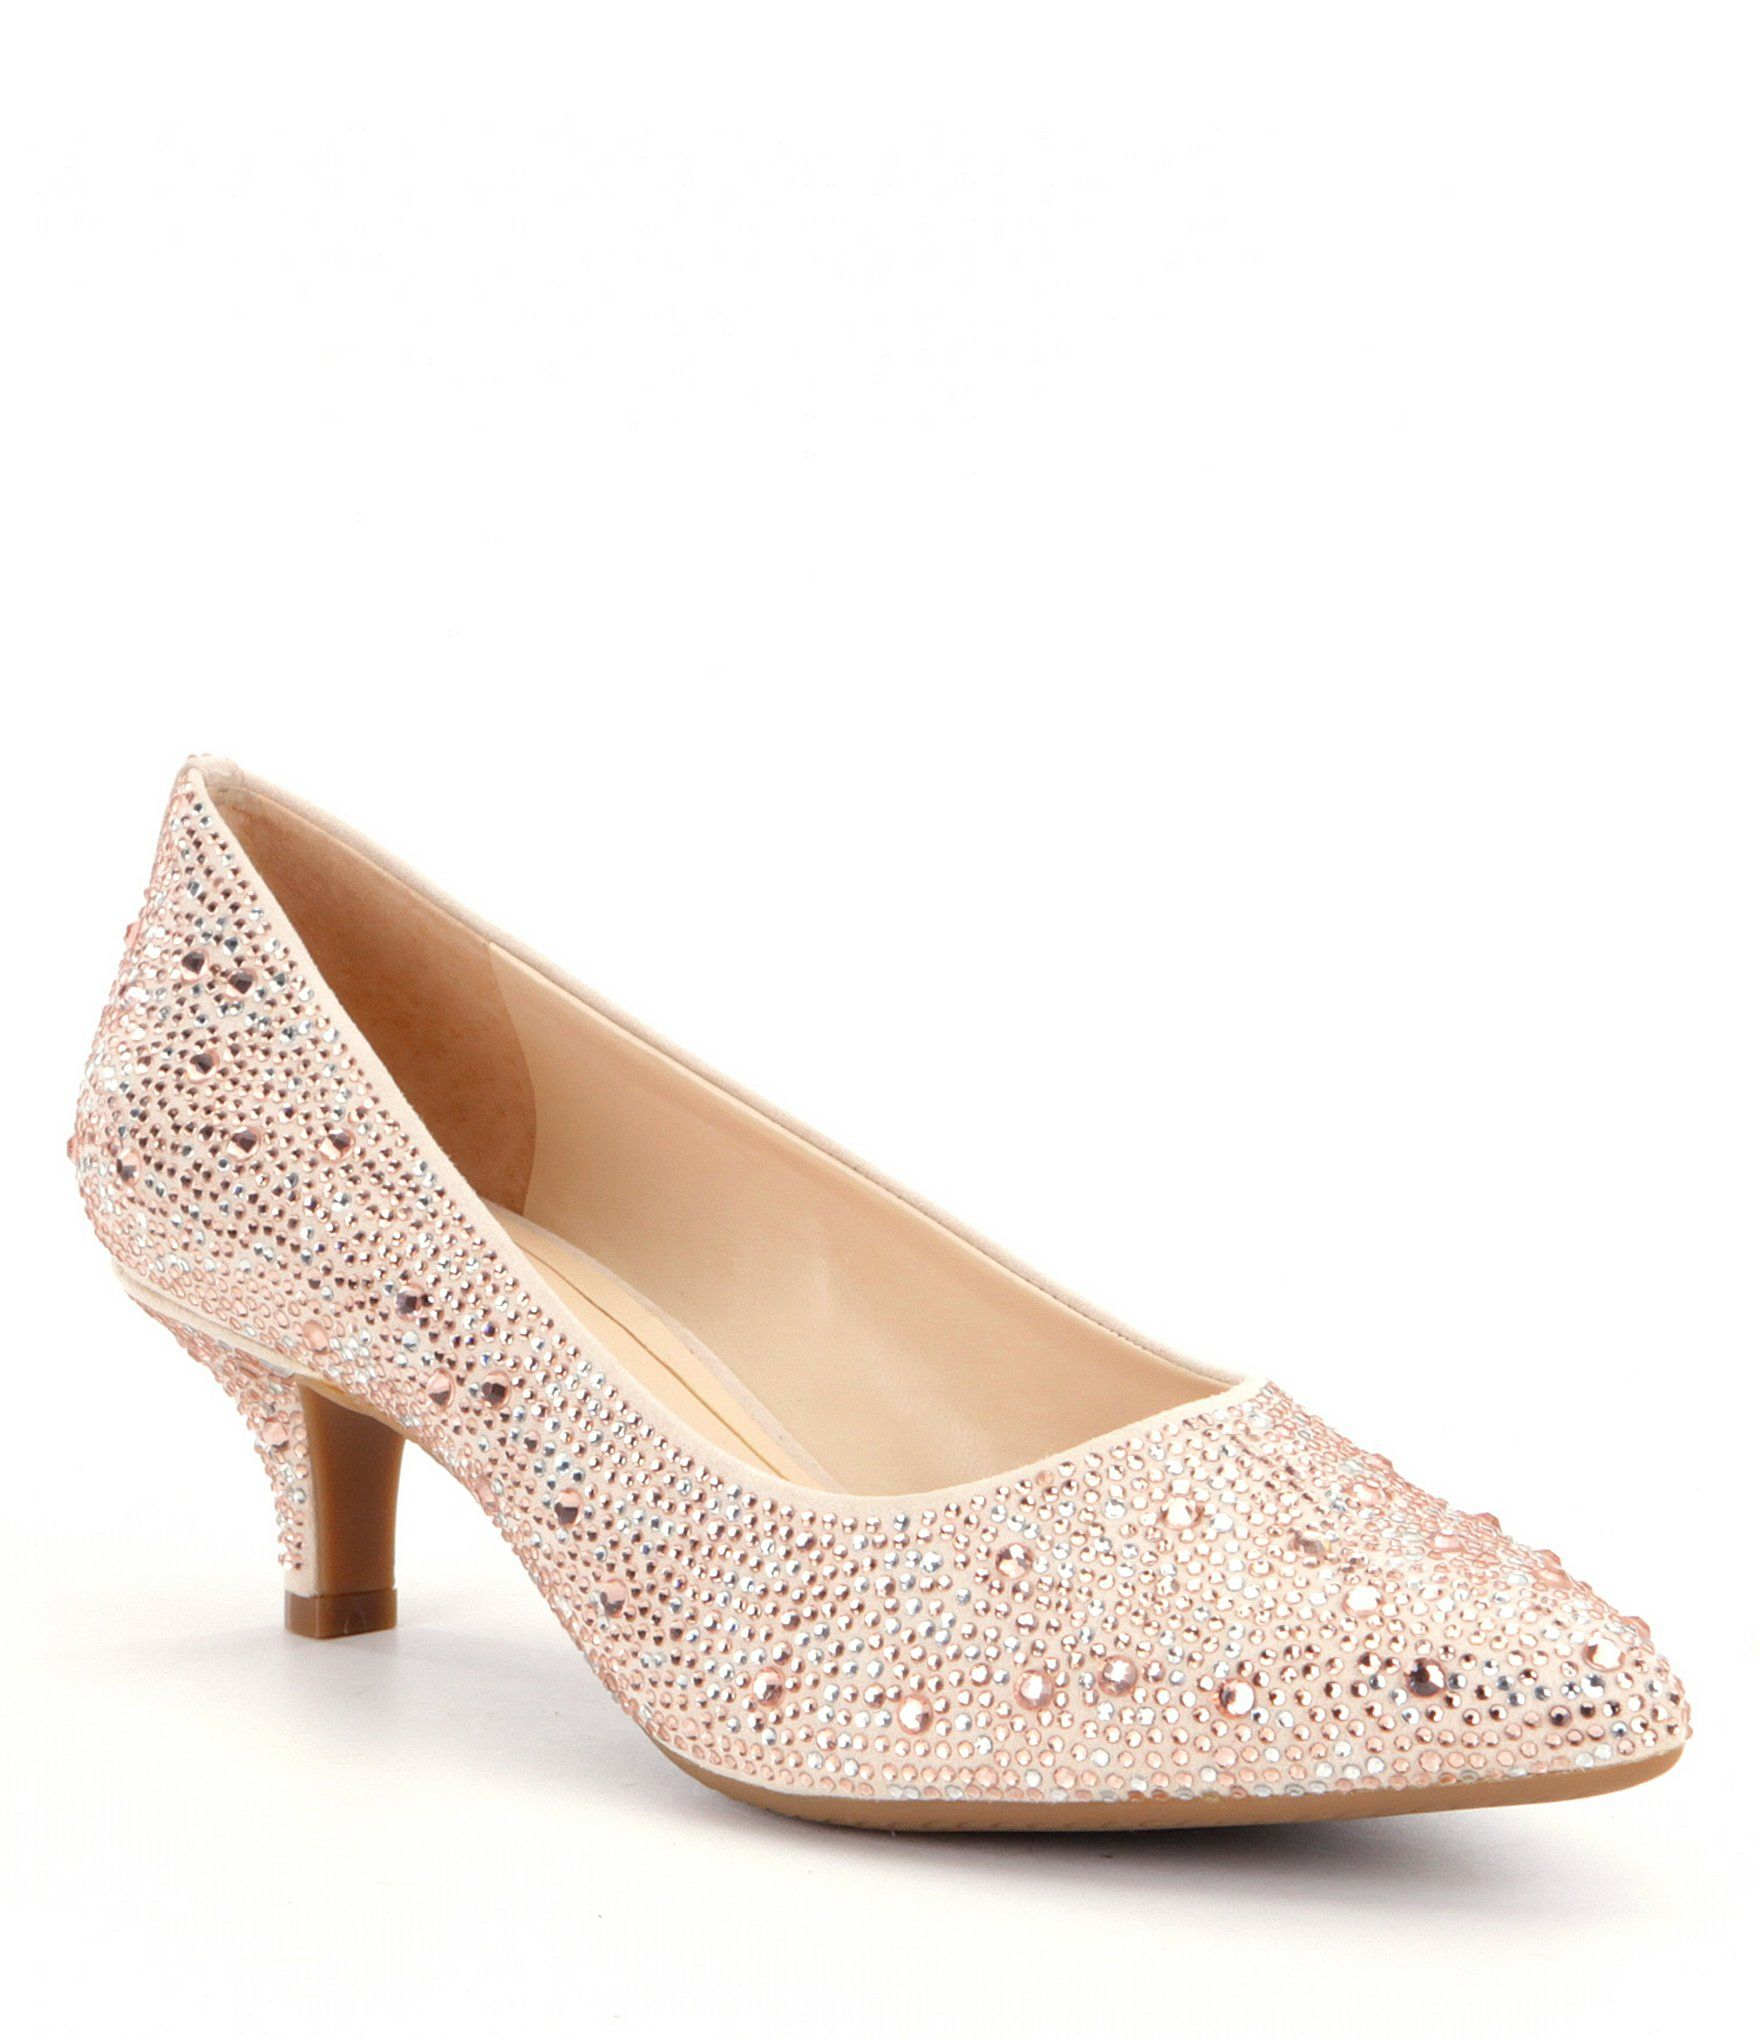 be7563f867041e Alex Marie Zhoey Stone Embellished Dress Pumps  Dillards Bridal Wedding  Shoes